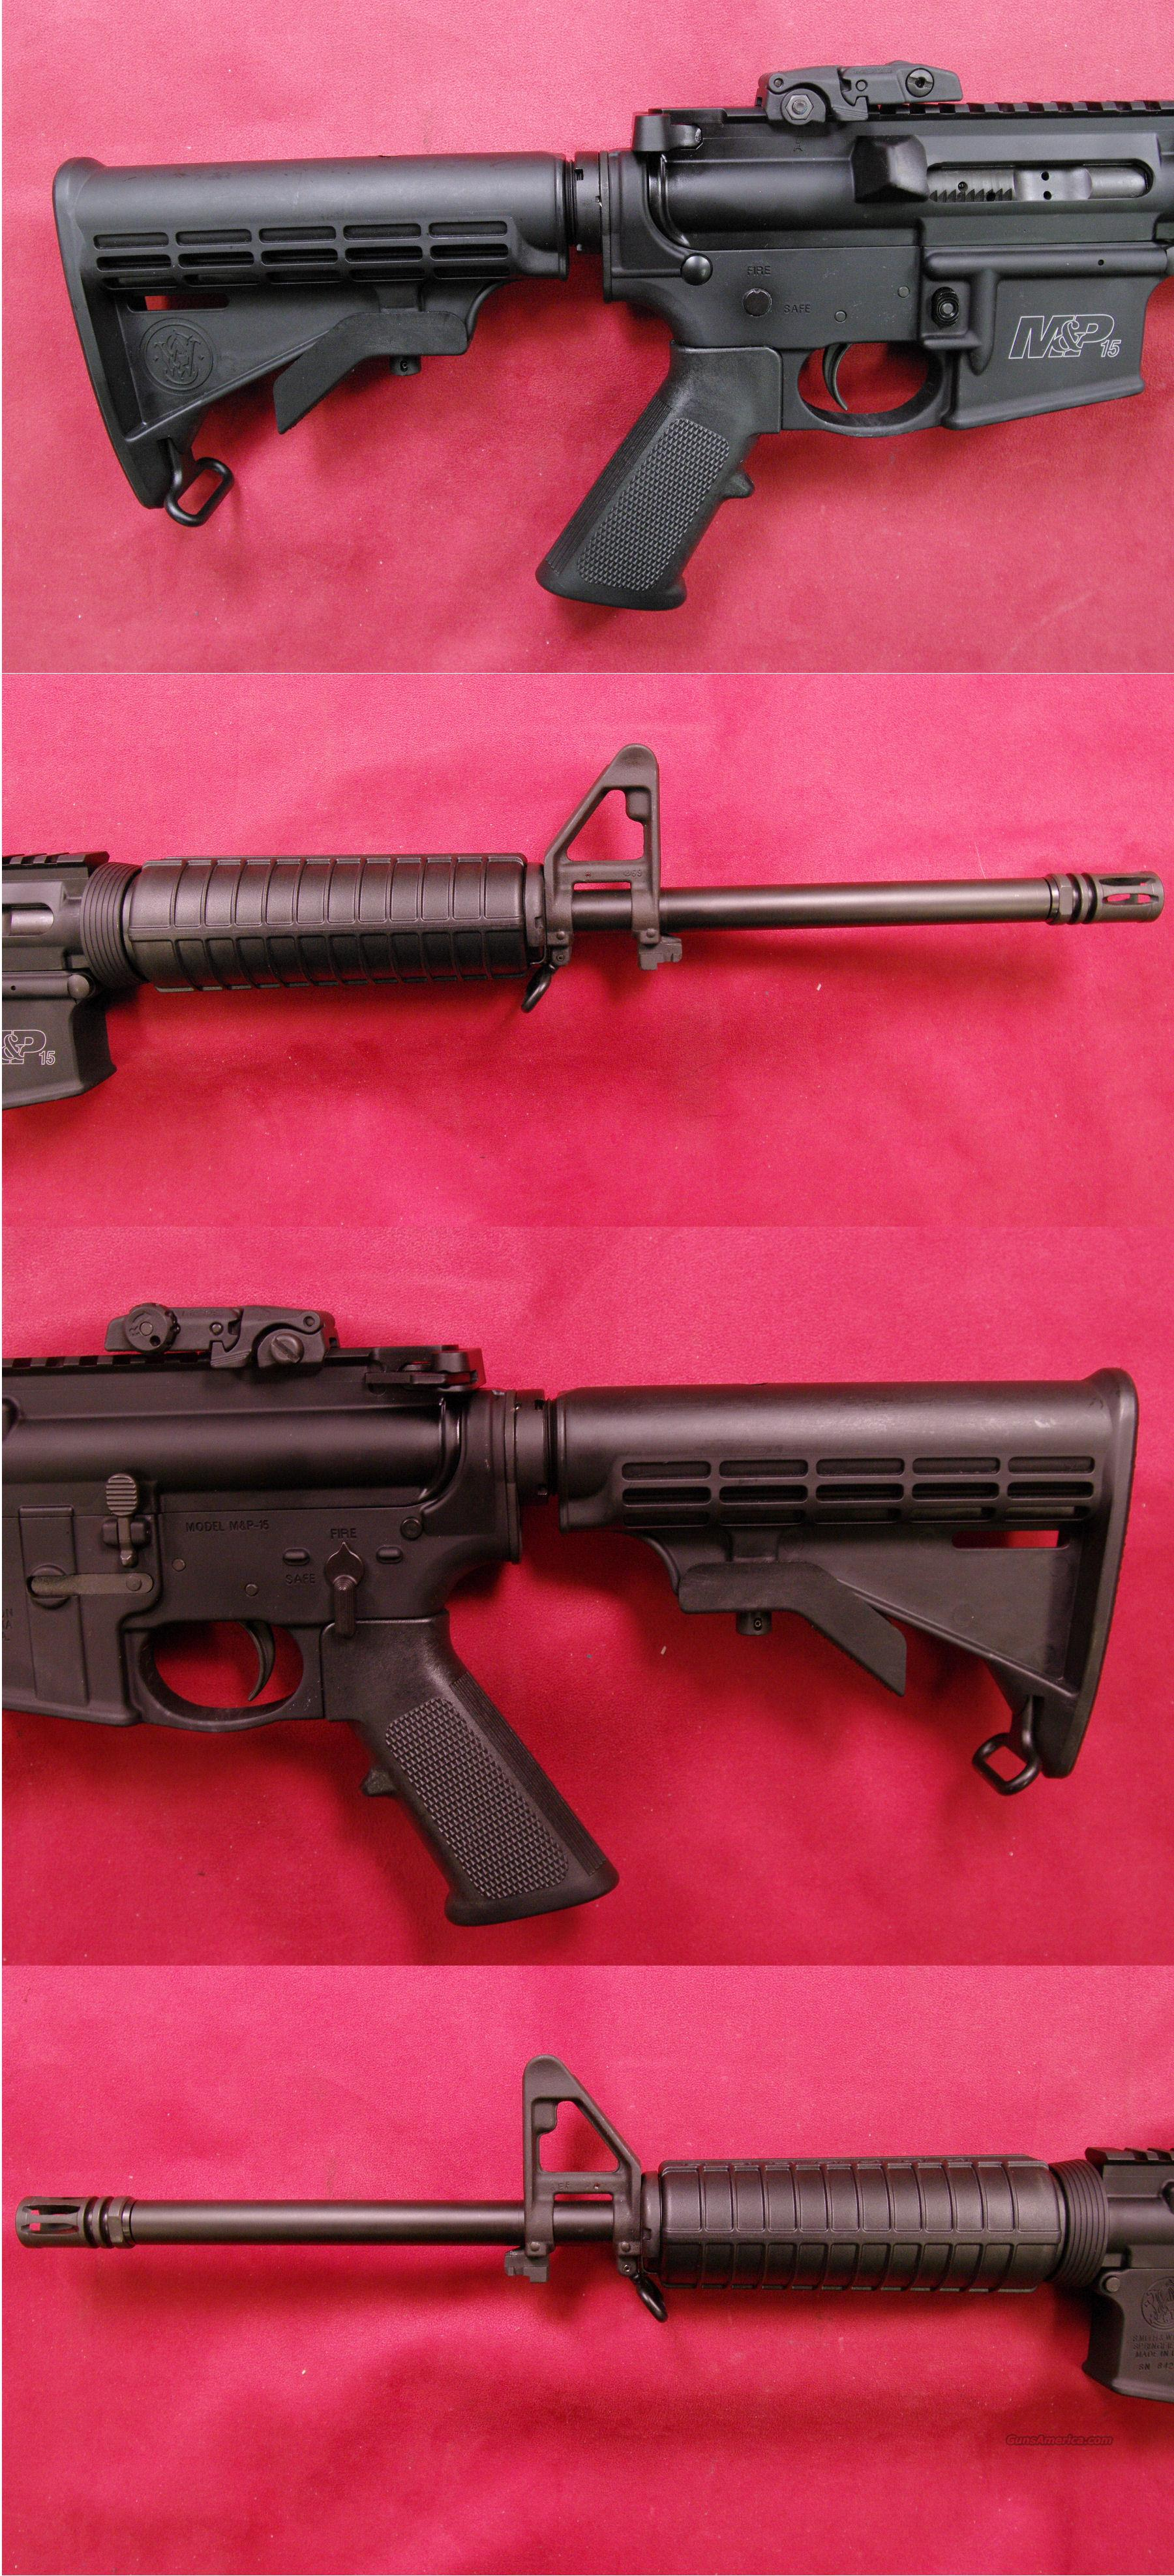 Smith & Wesson M&P 15 Sporter .223 Rem  Guns > Rifles > Smith & Wesson Rifles > M&P